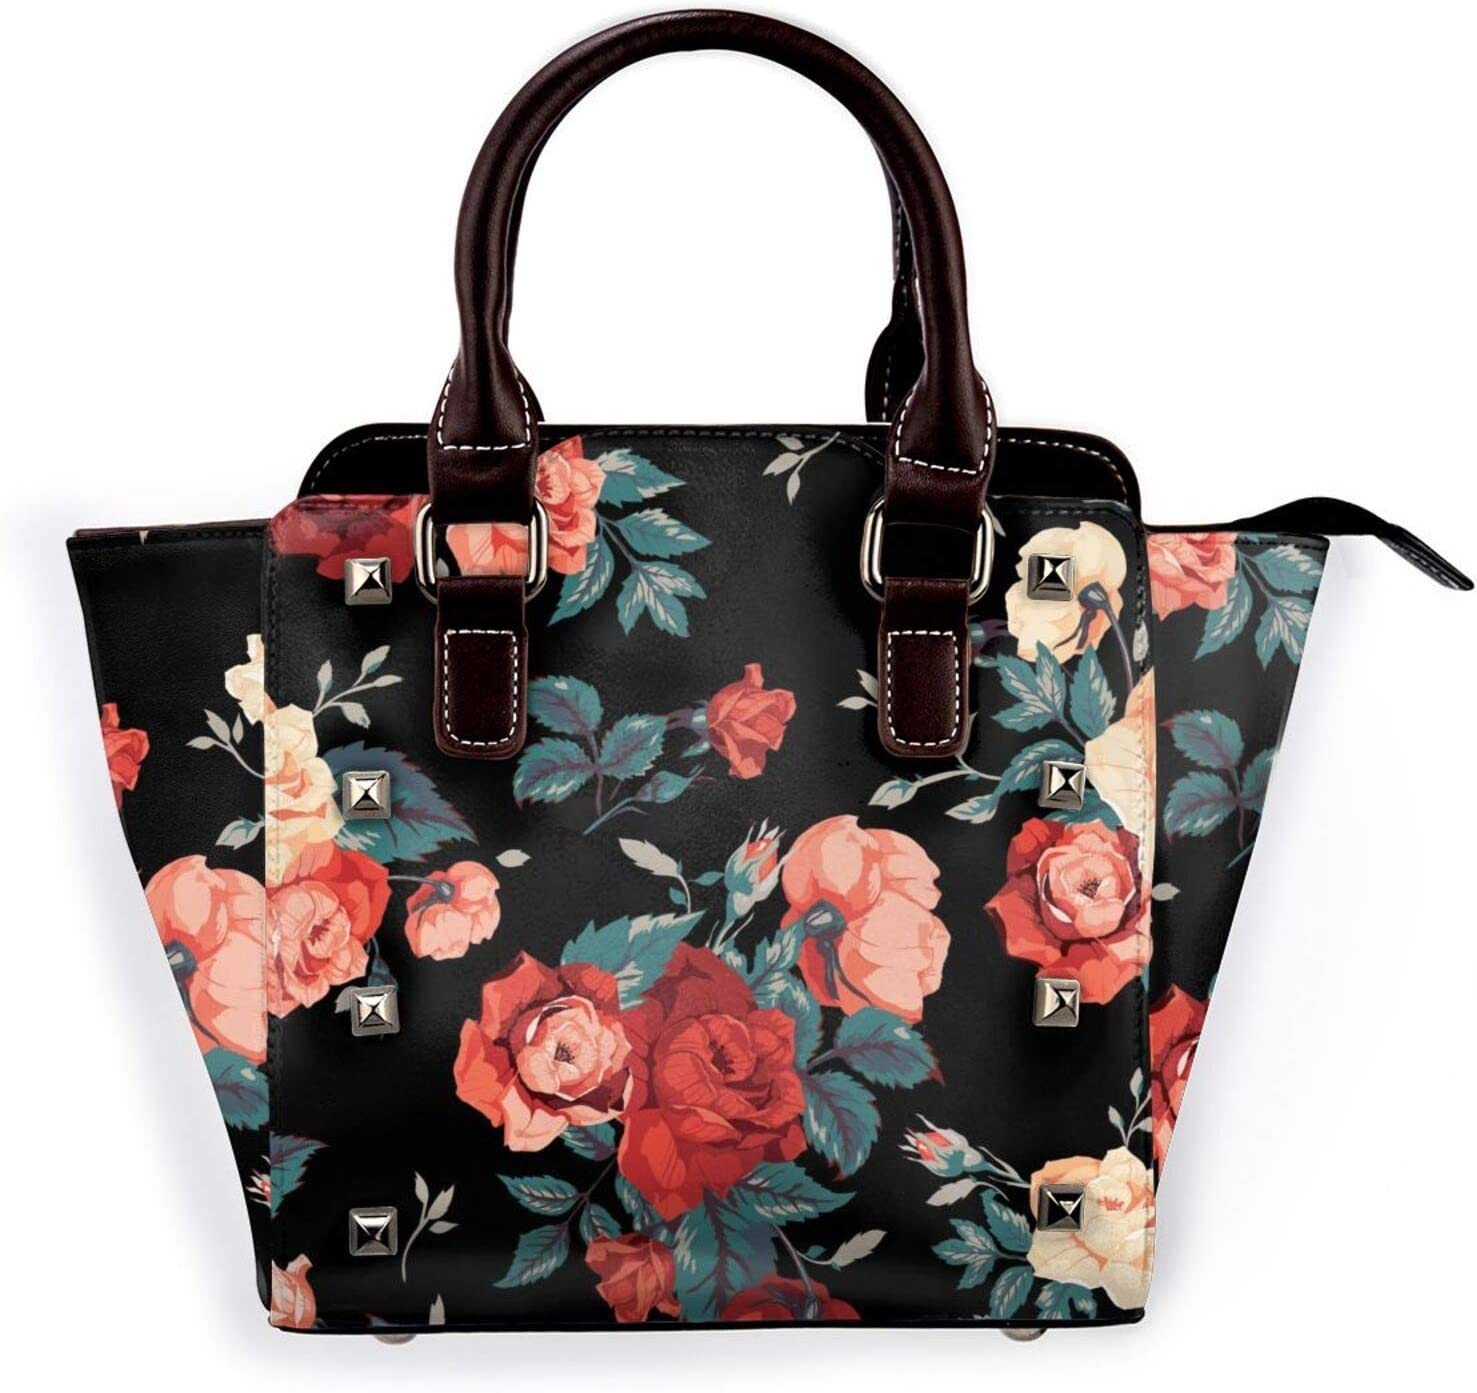 Tote NEW before selling ☆ Bag New sales Vintage Rose Golden 3D Printed Shoulder Non-Fading